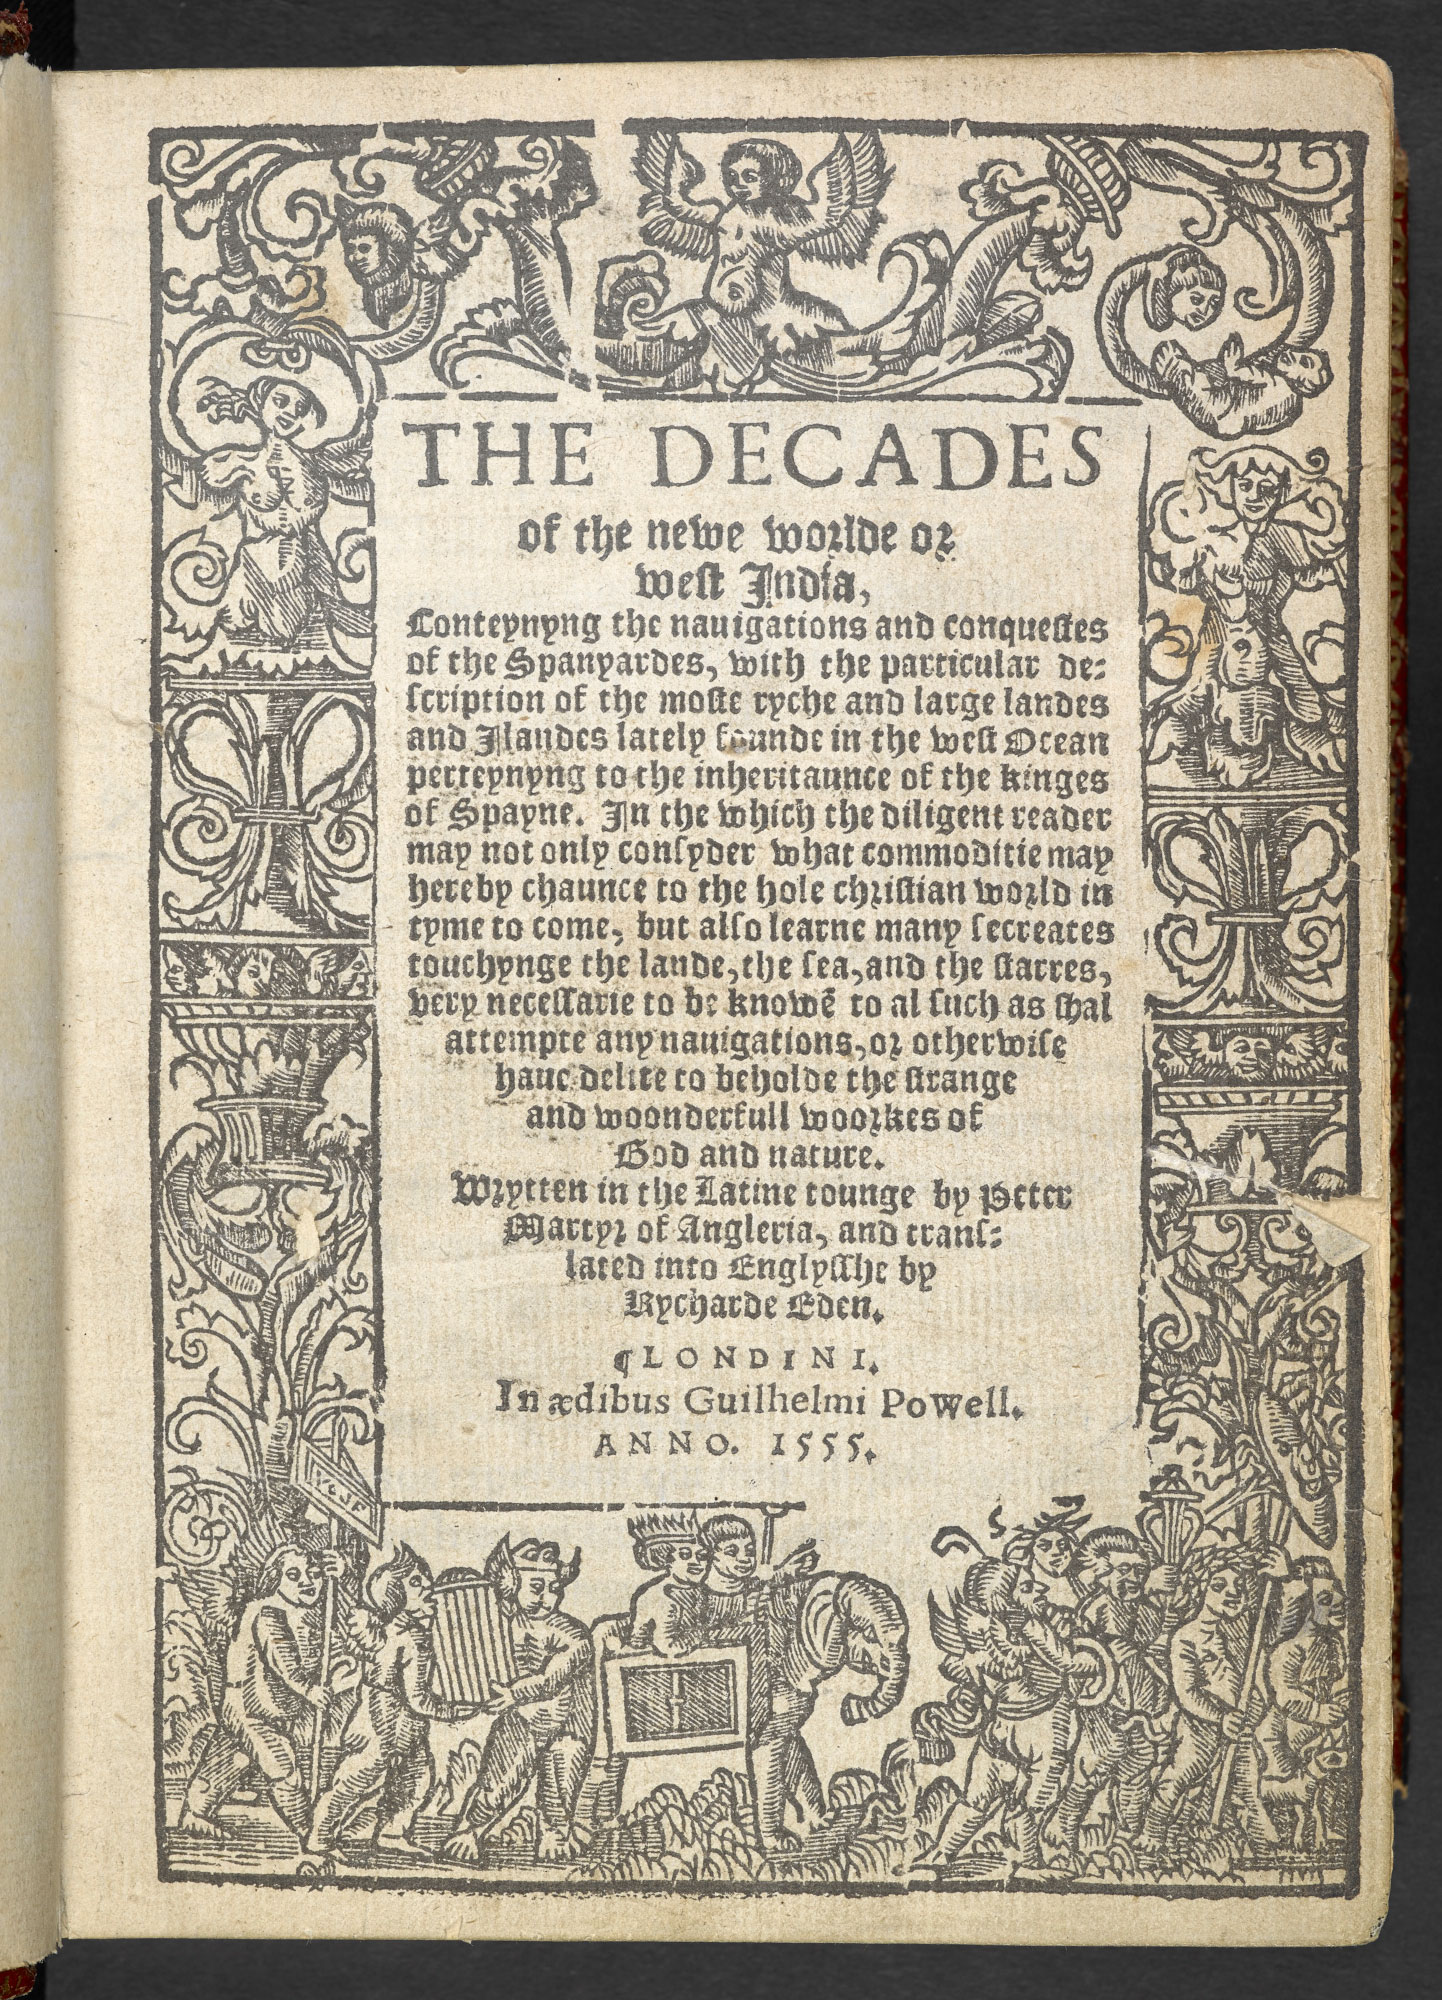 Eden's Decades of the New World, 1555